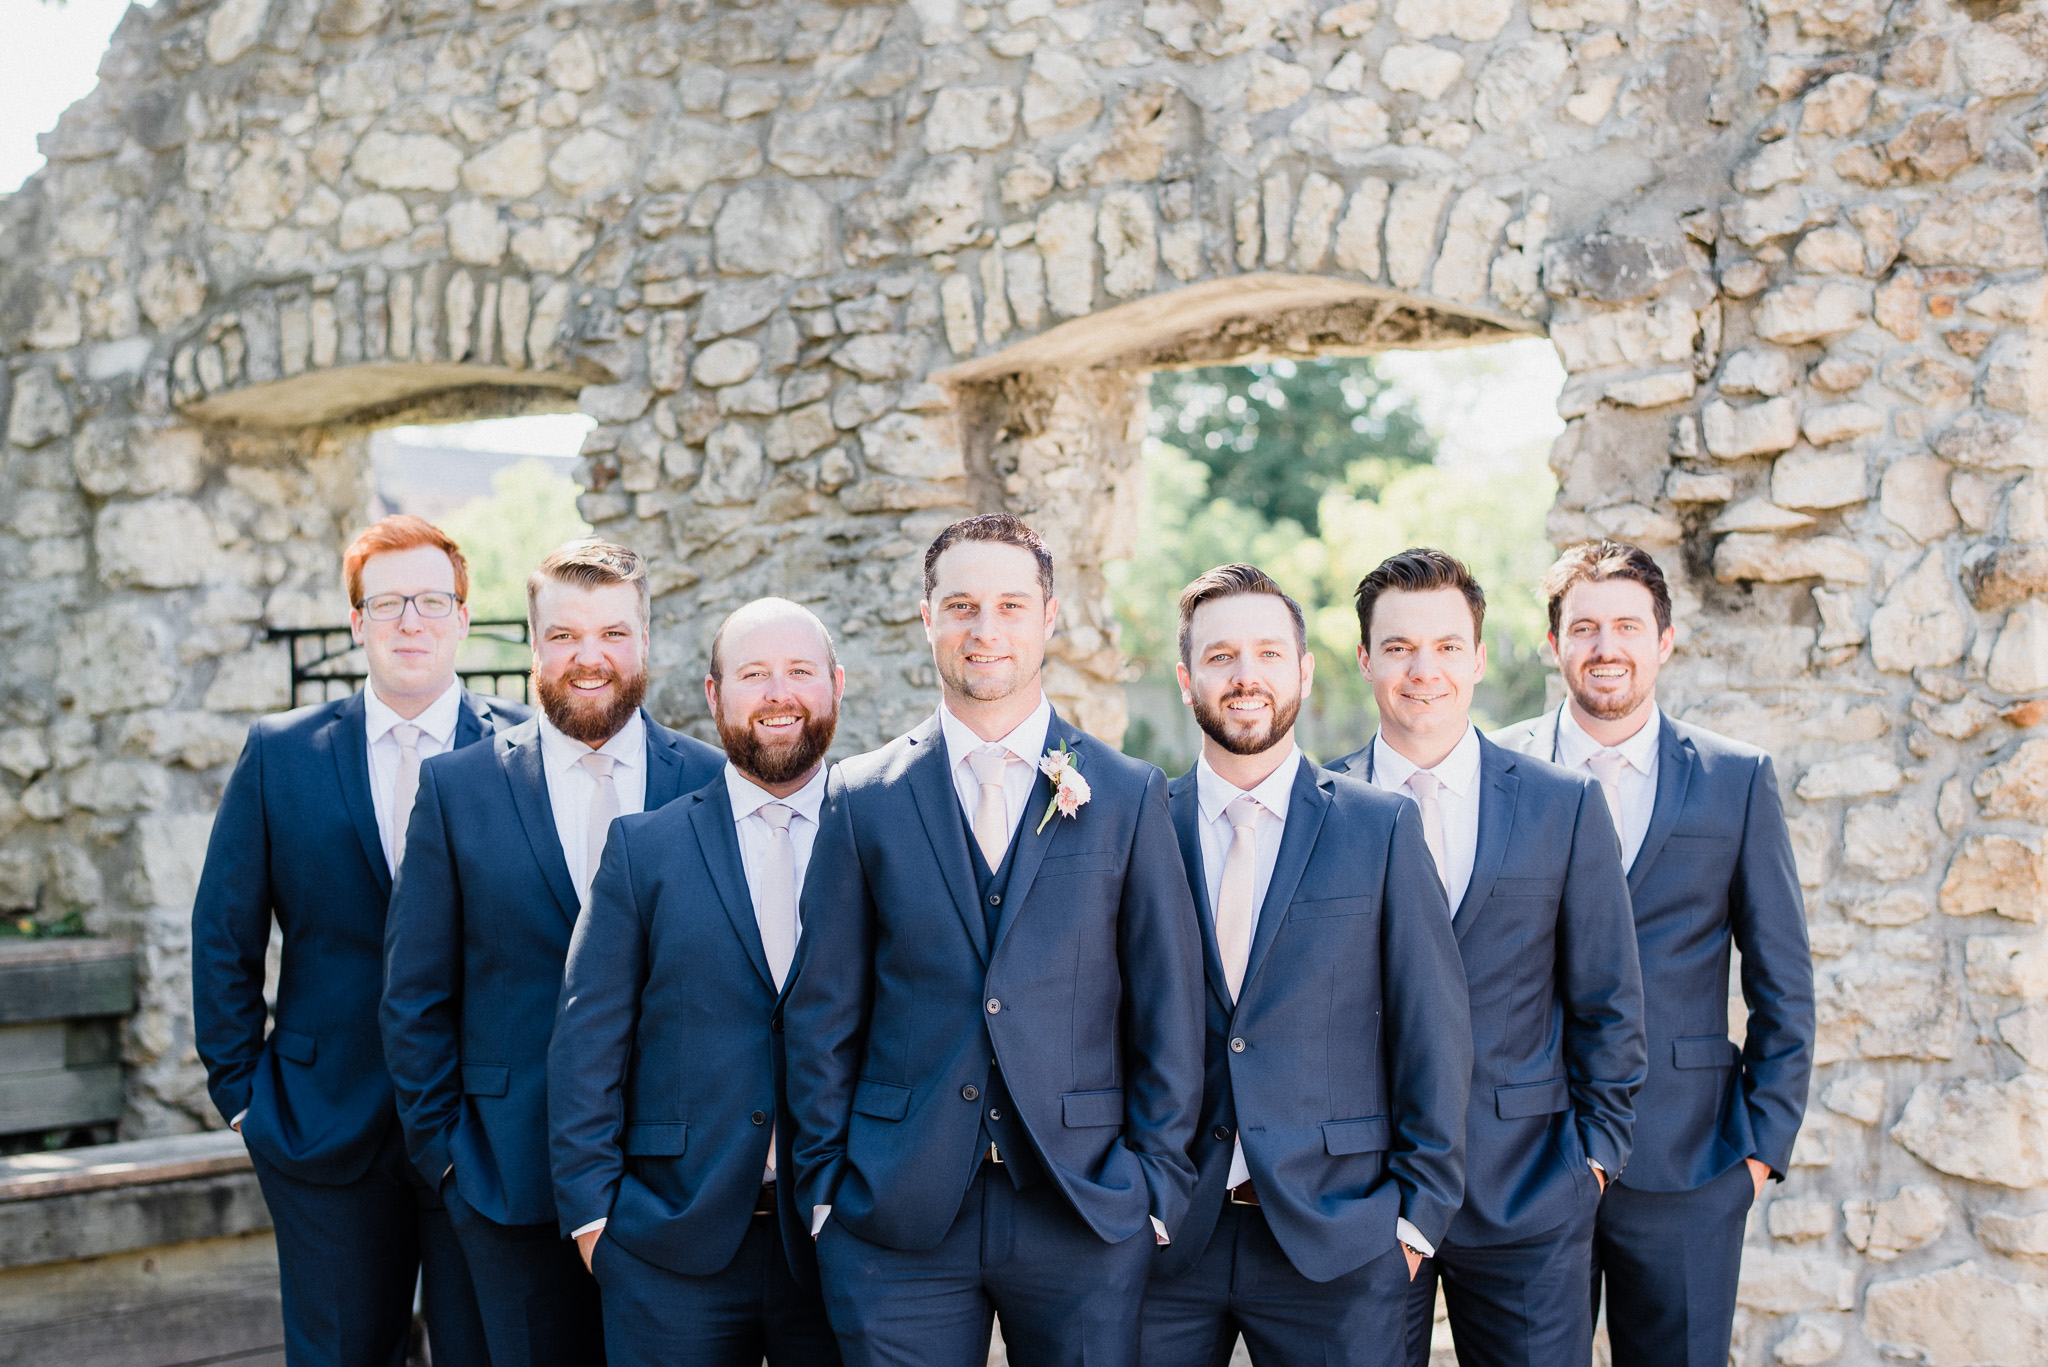 Groom and groomsmen in navy blue suits by Jenn Kavanagh Photography